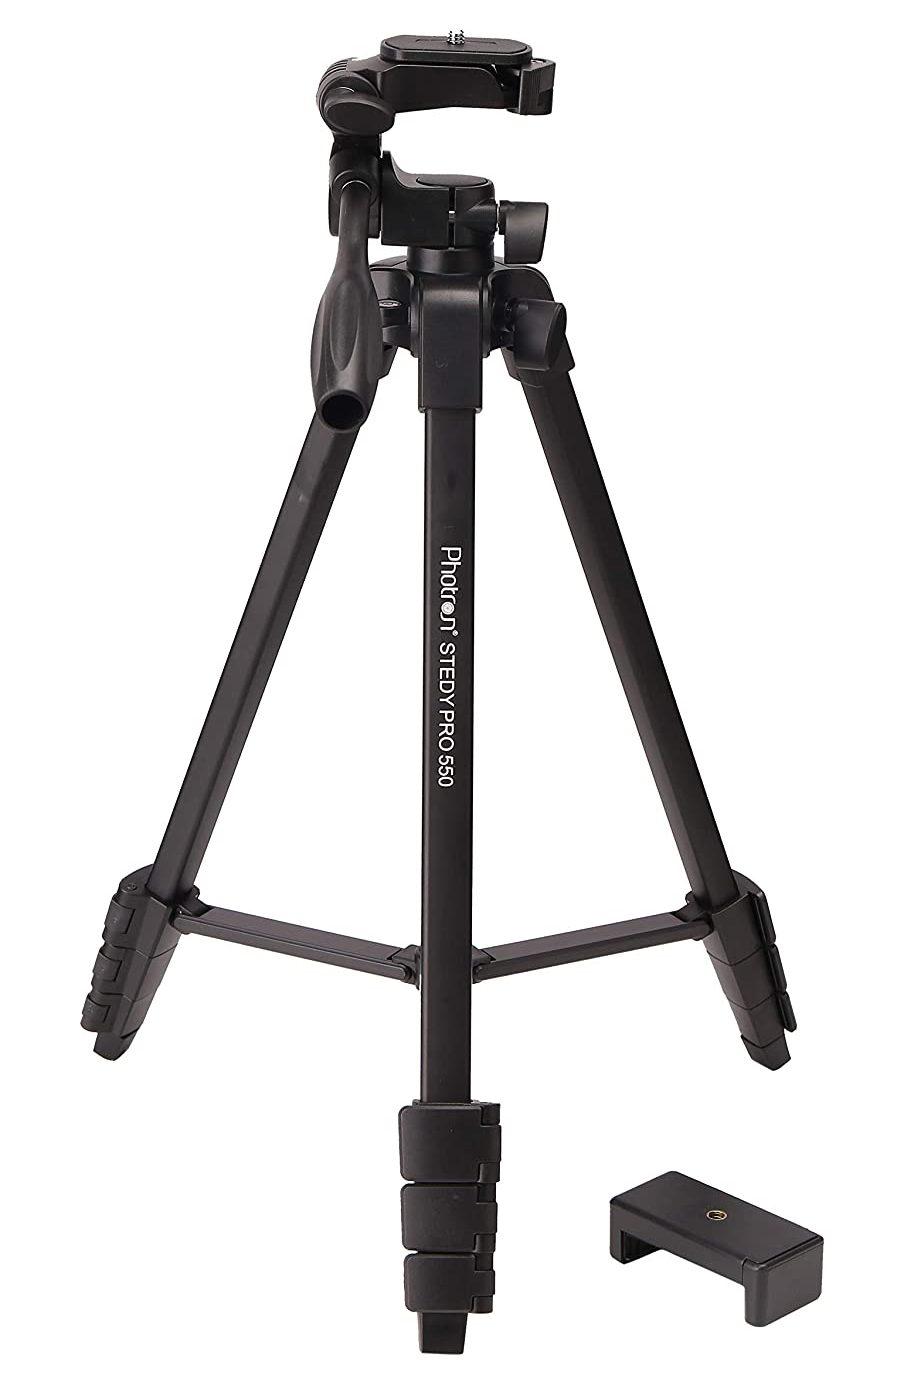 Photron Pro 550- - Best Tripods for Mobile Phones in India